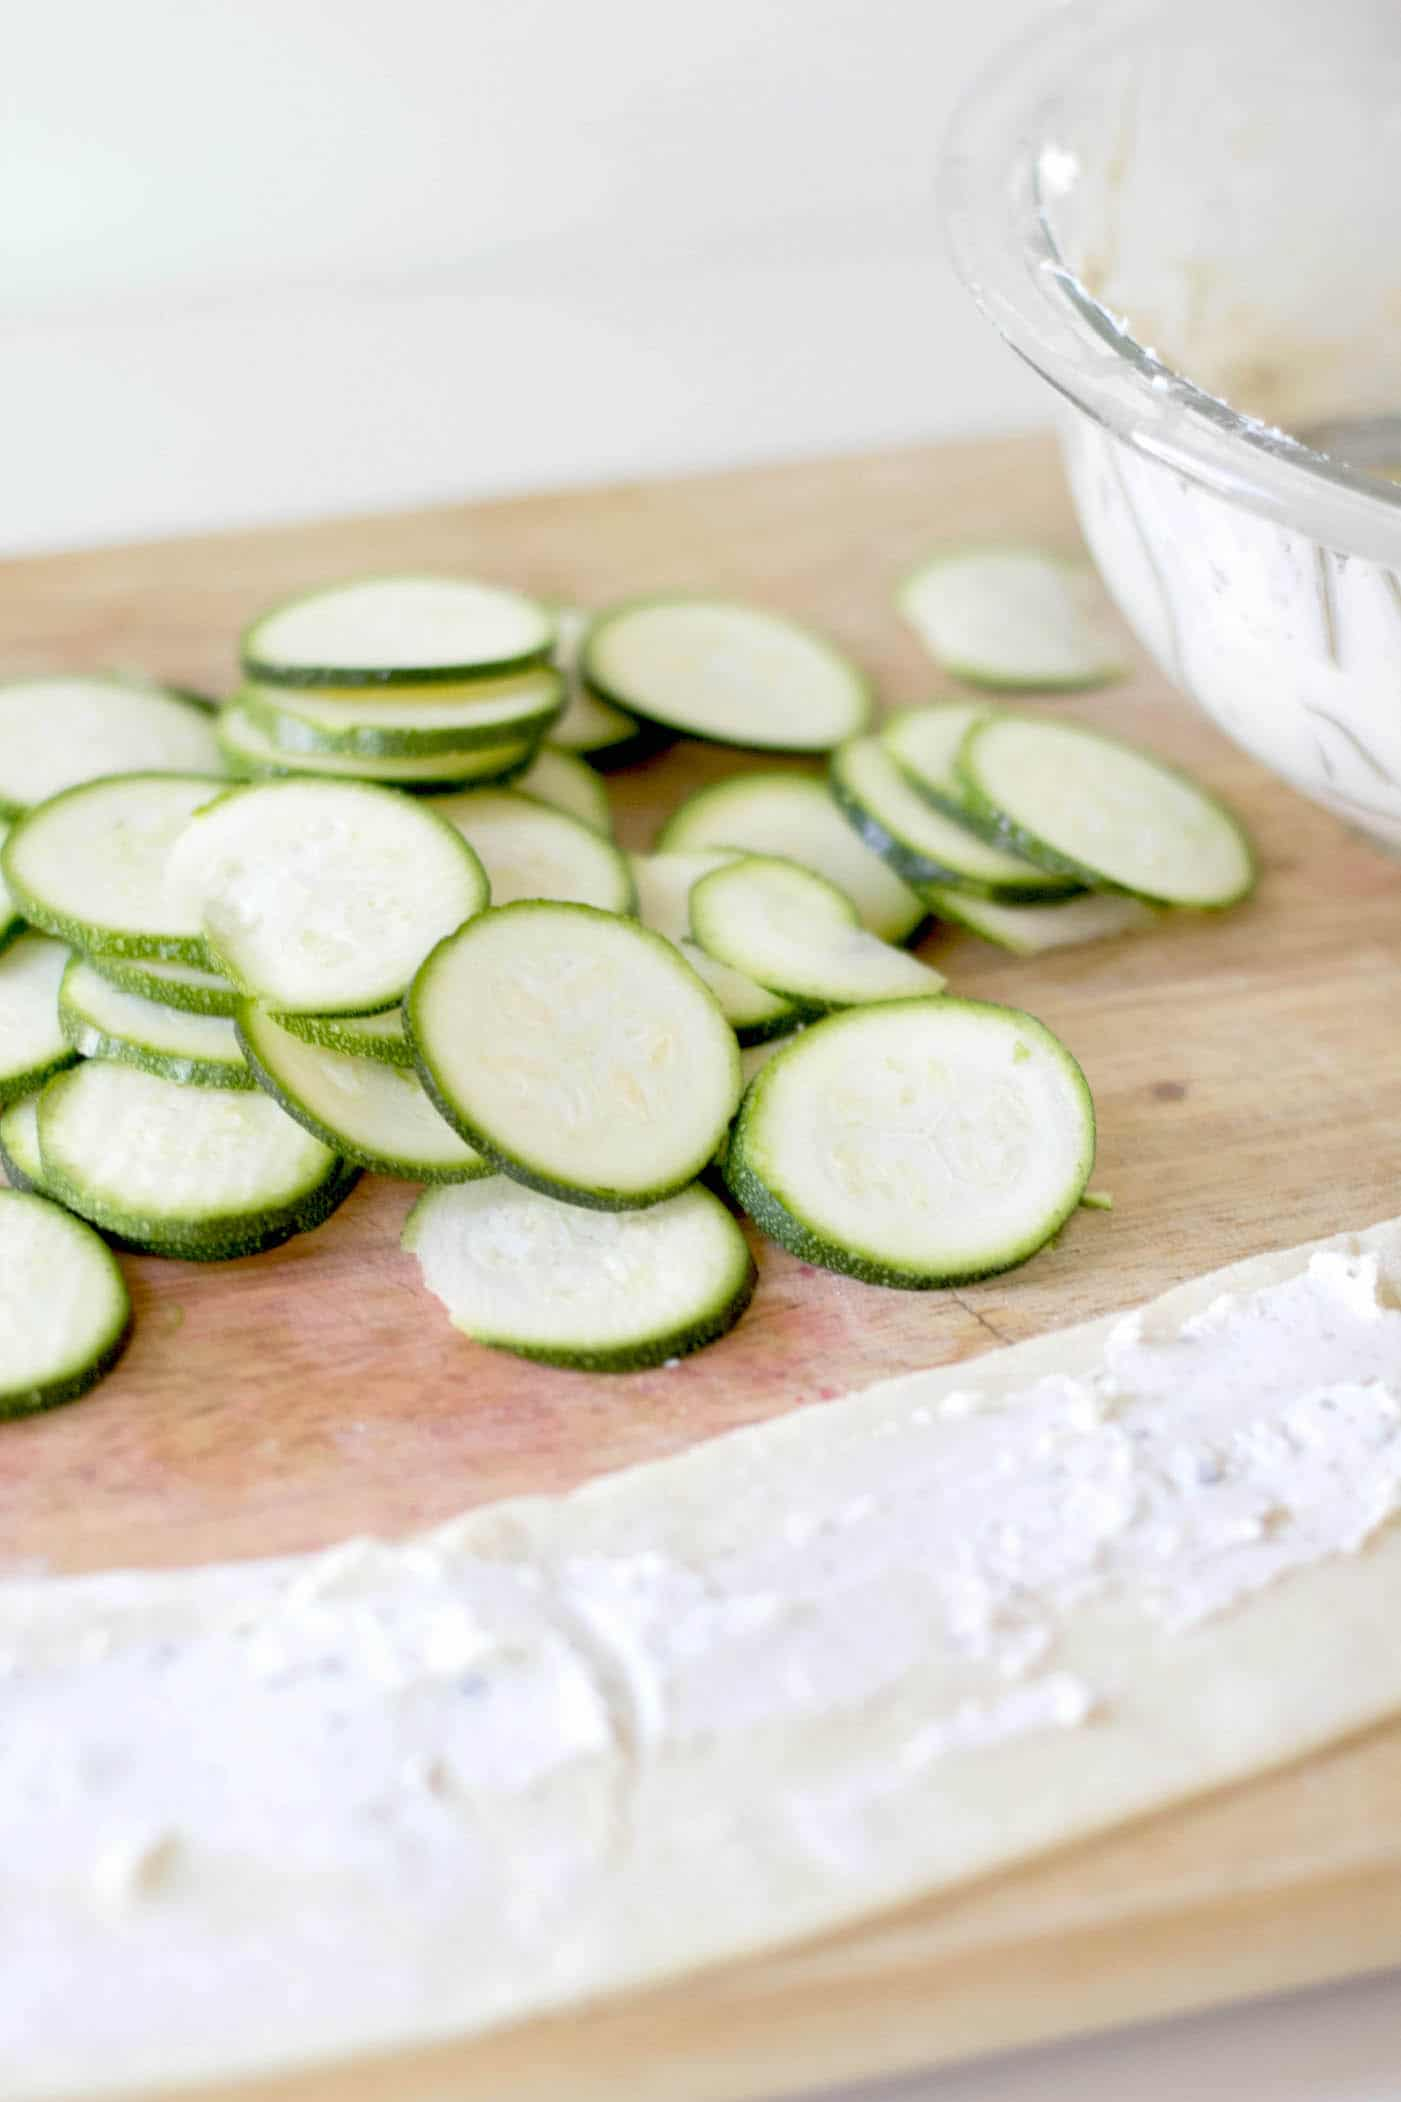 Puff pastry appetizer ingredients - zucchini sliced and dough rolled out with cream cheese